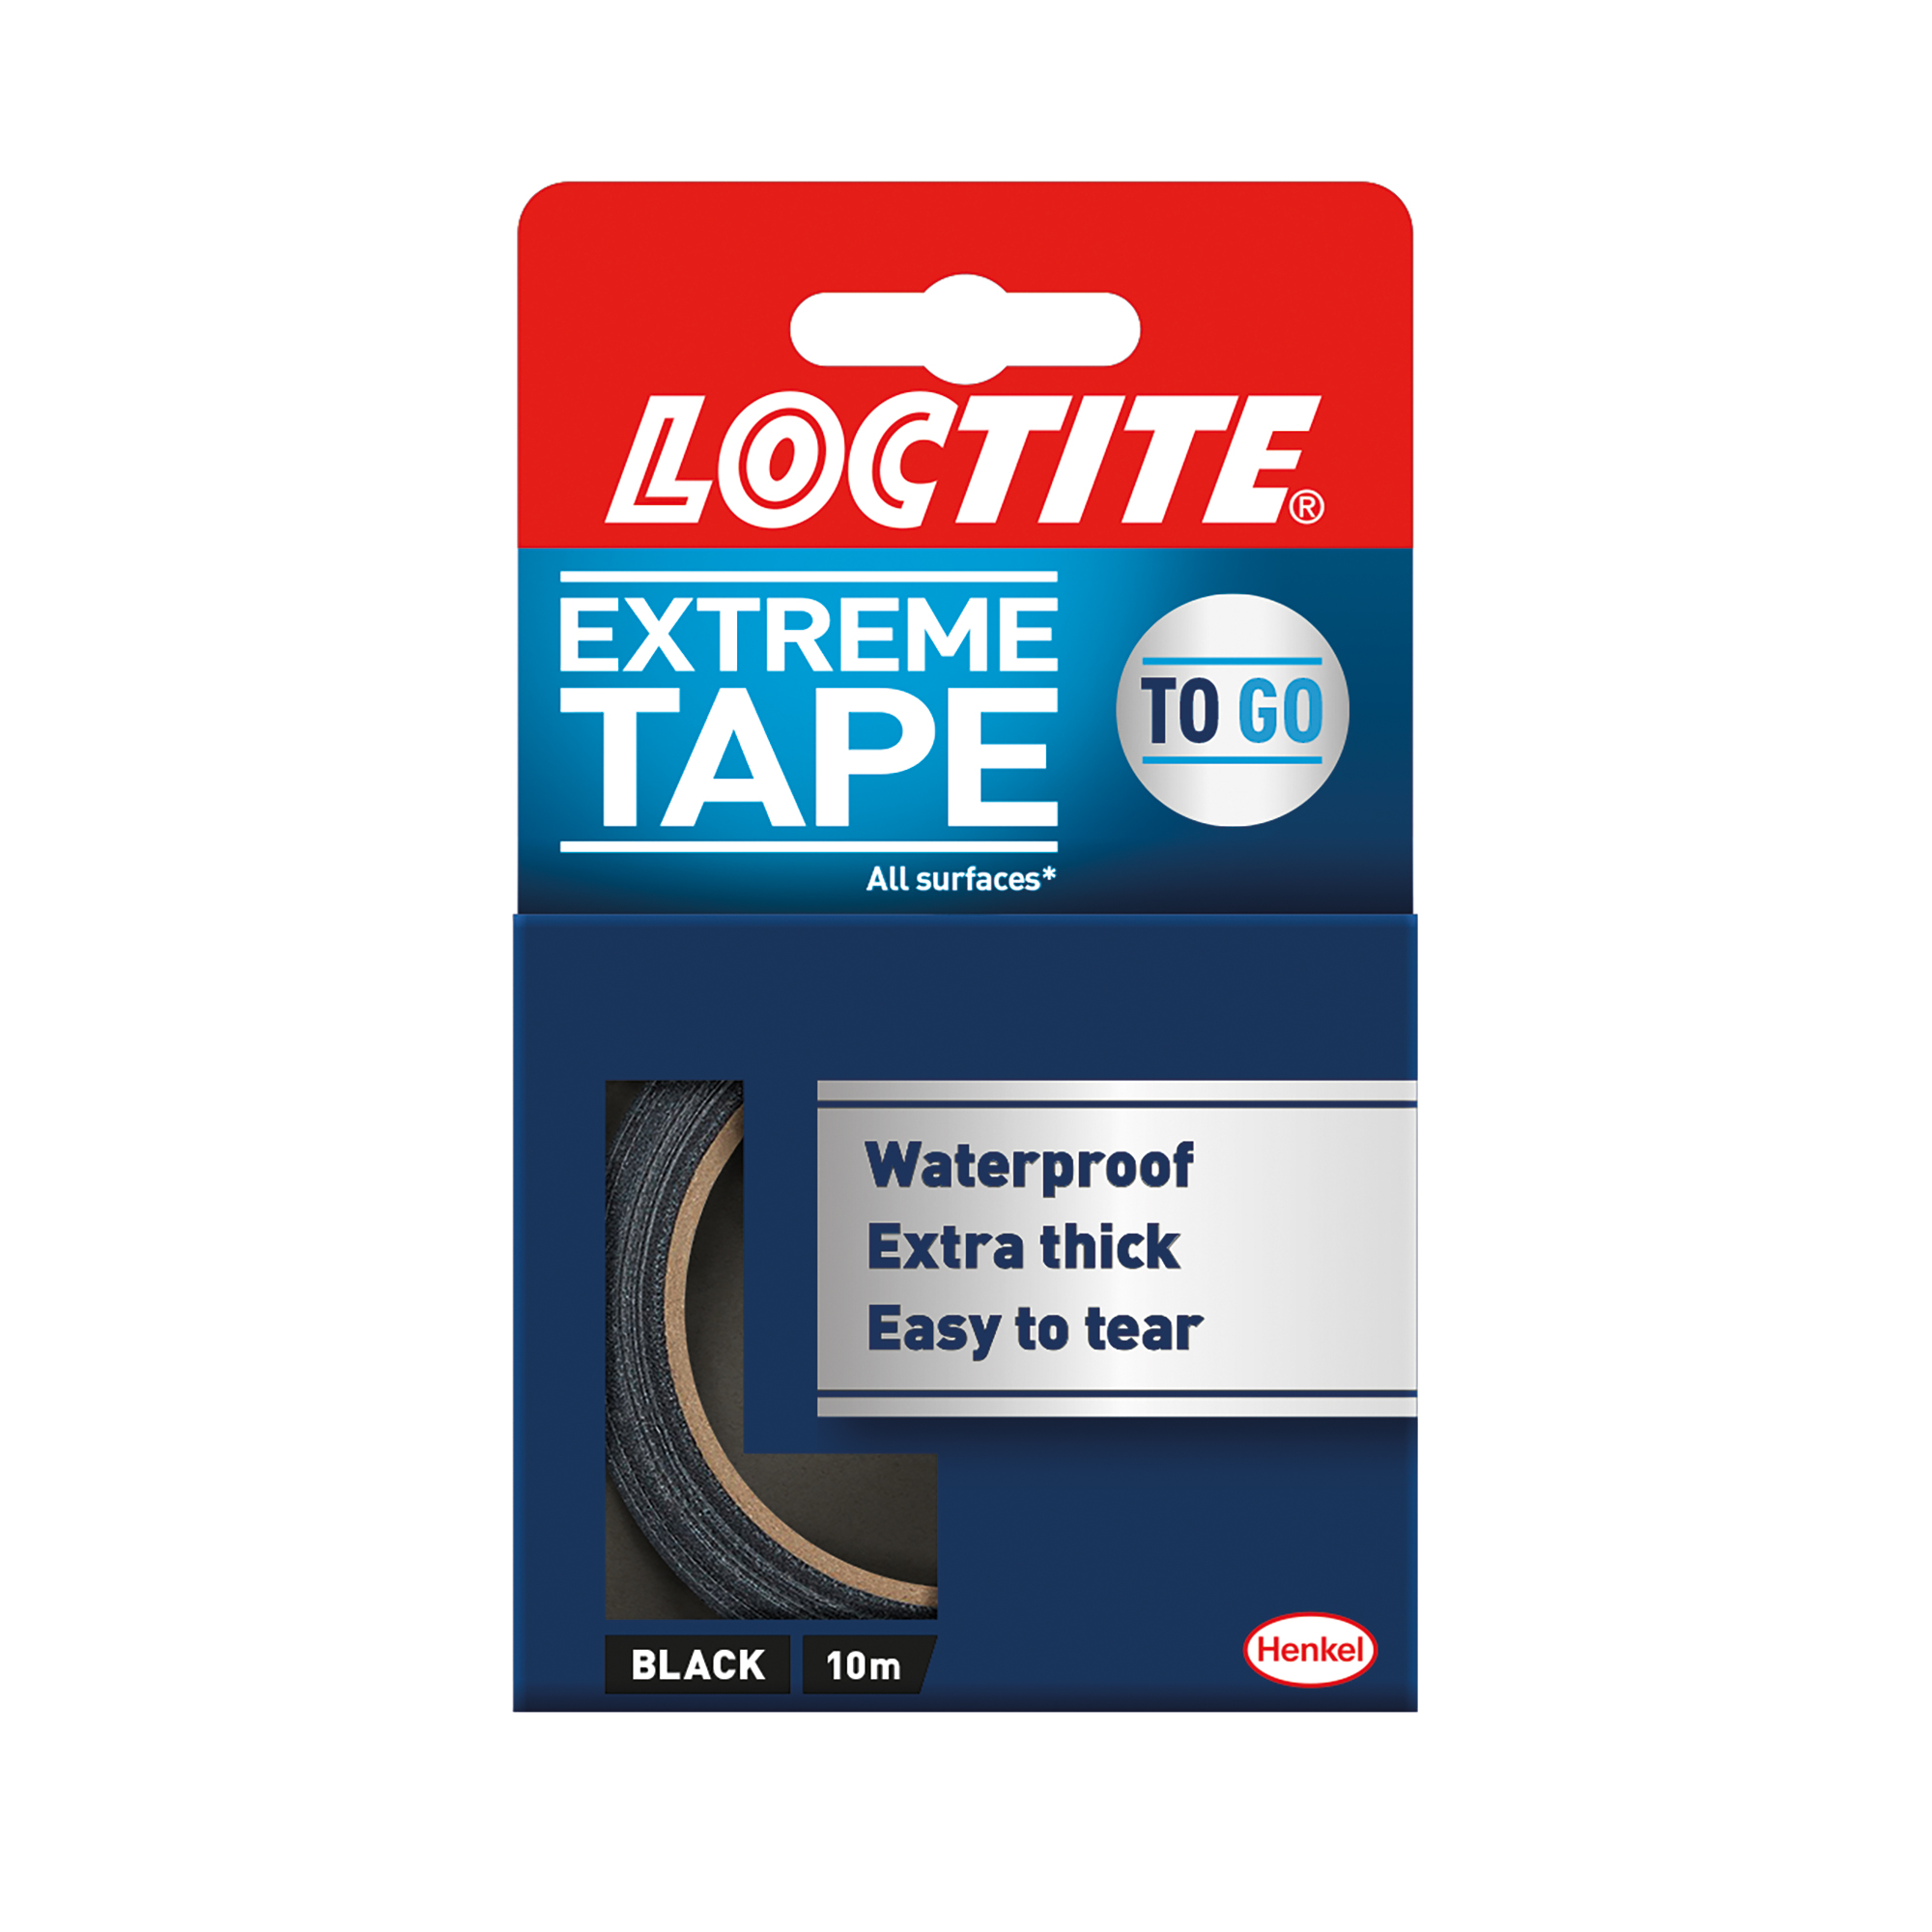 Duct tape Loctite Extreme Tape 10M Black Ref 2505718